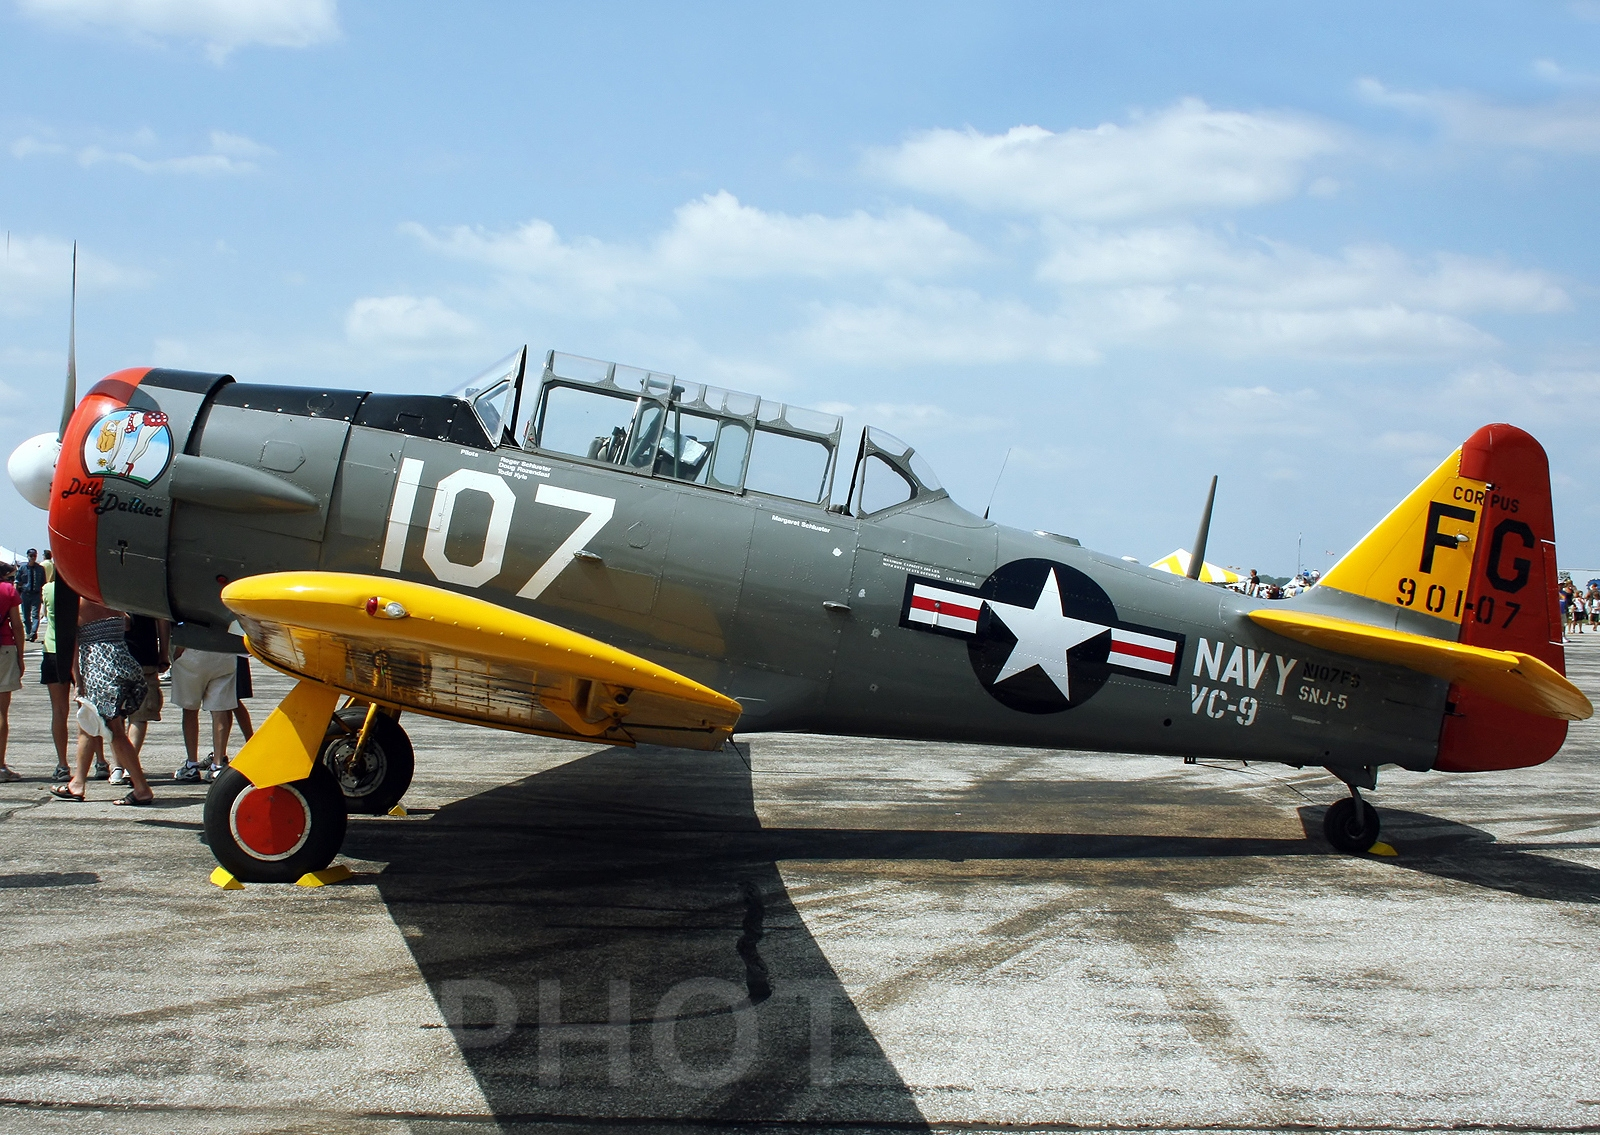 File:North_American_AT 6_Texan,_Private_JP7038551 on Number Php